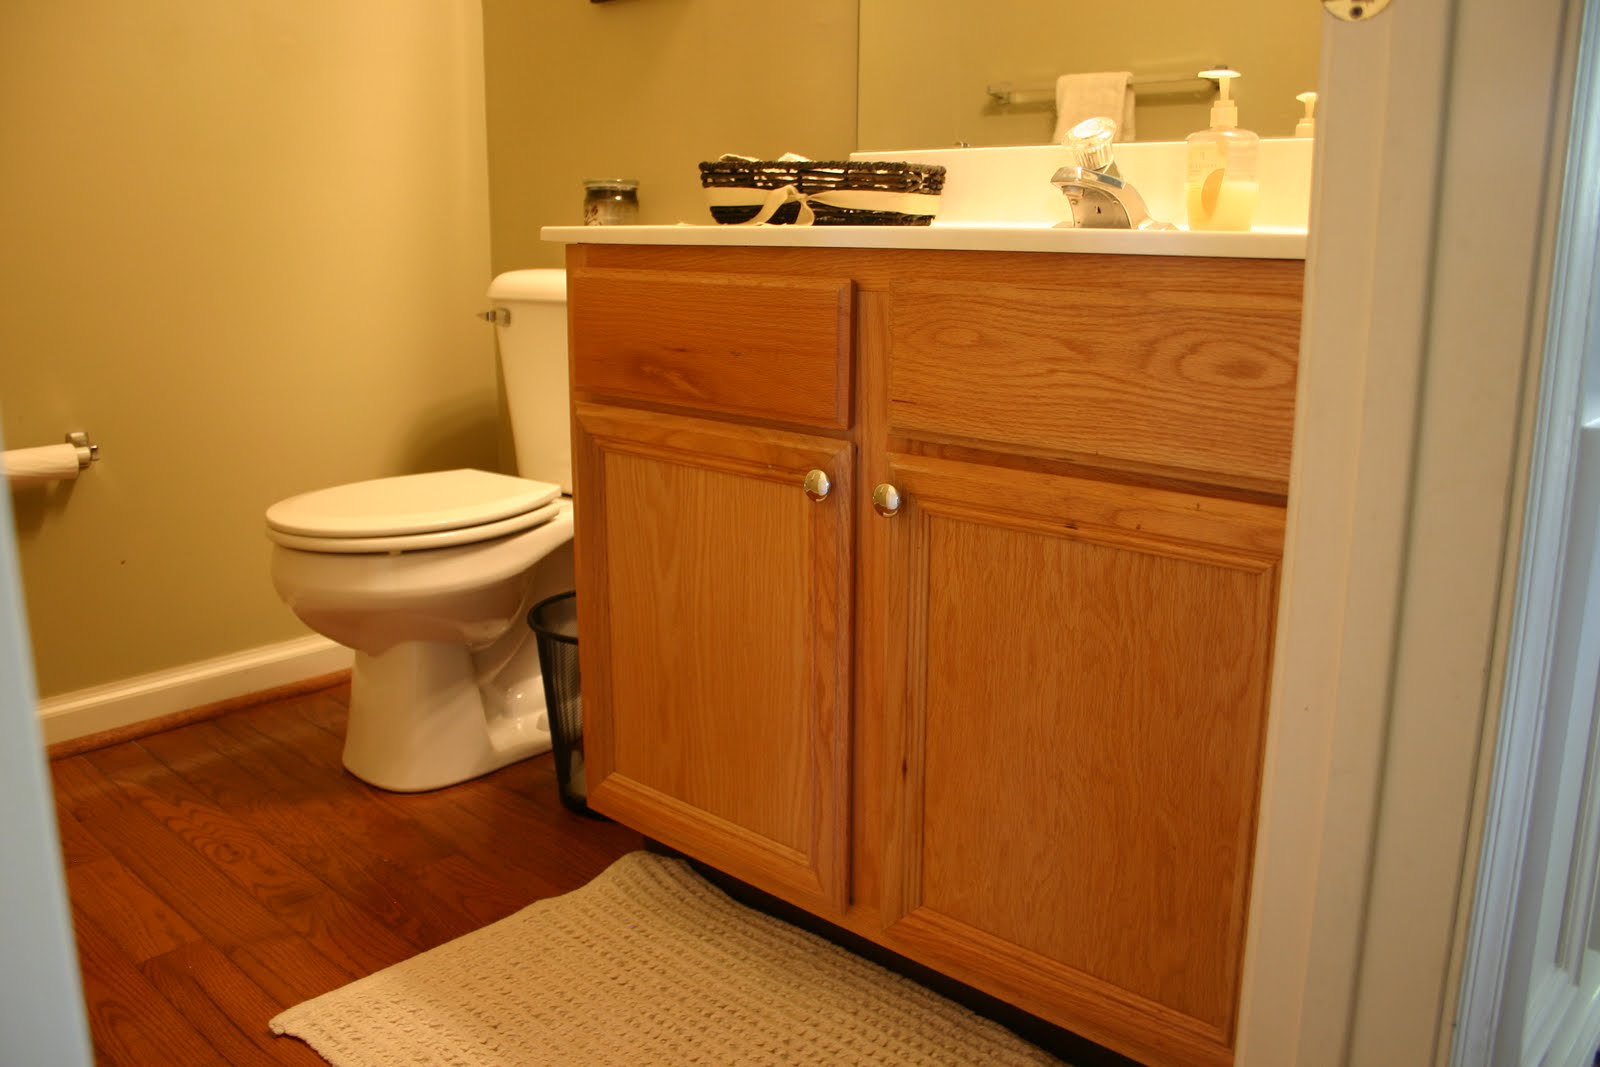 This builders grade vanity has GOT TO GO. The  Bathroom  Game Plan   East Coast Creative Blog